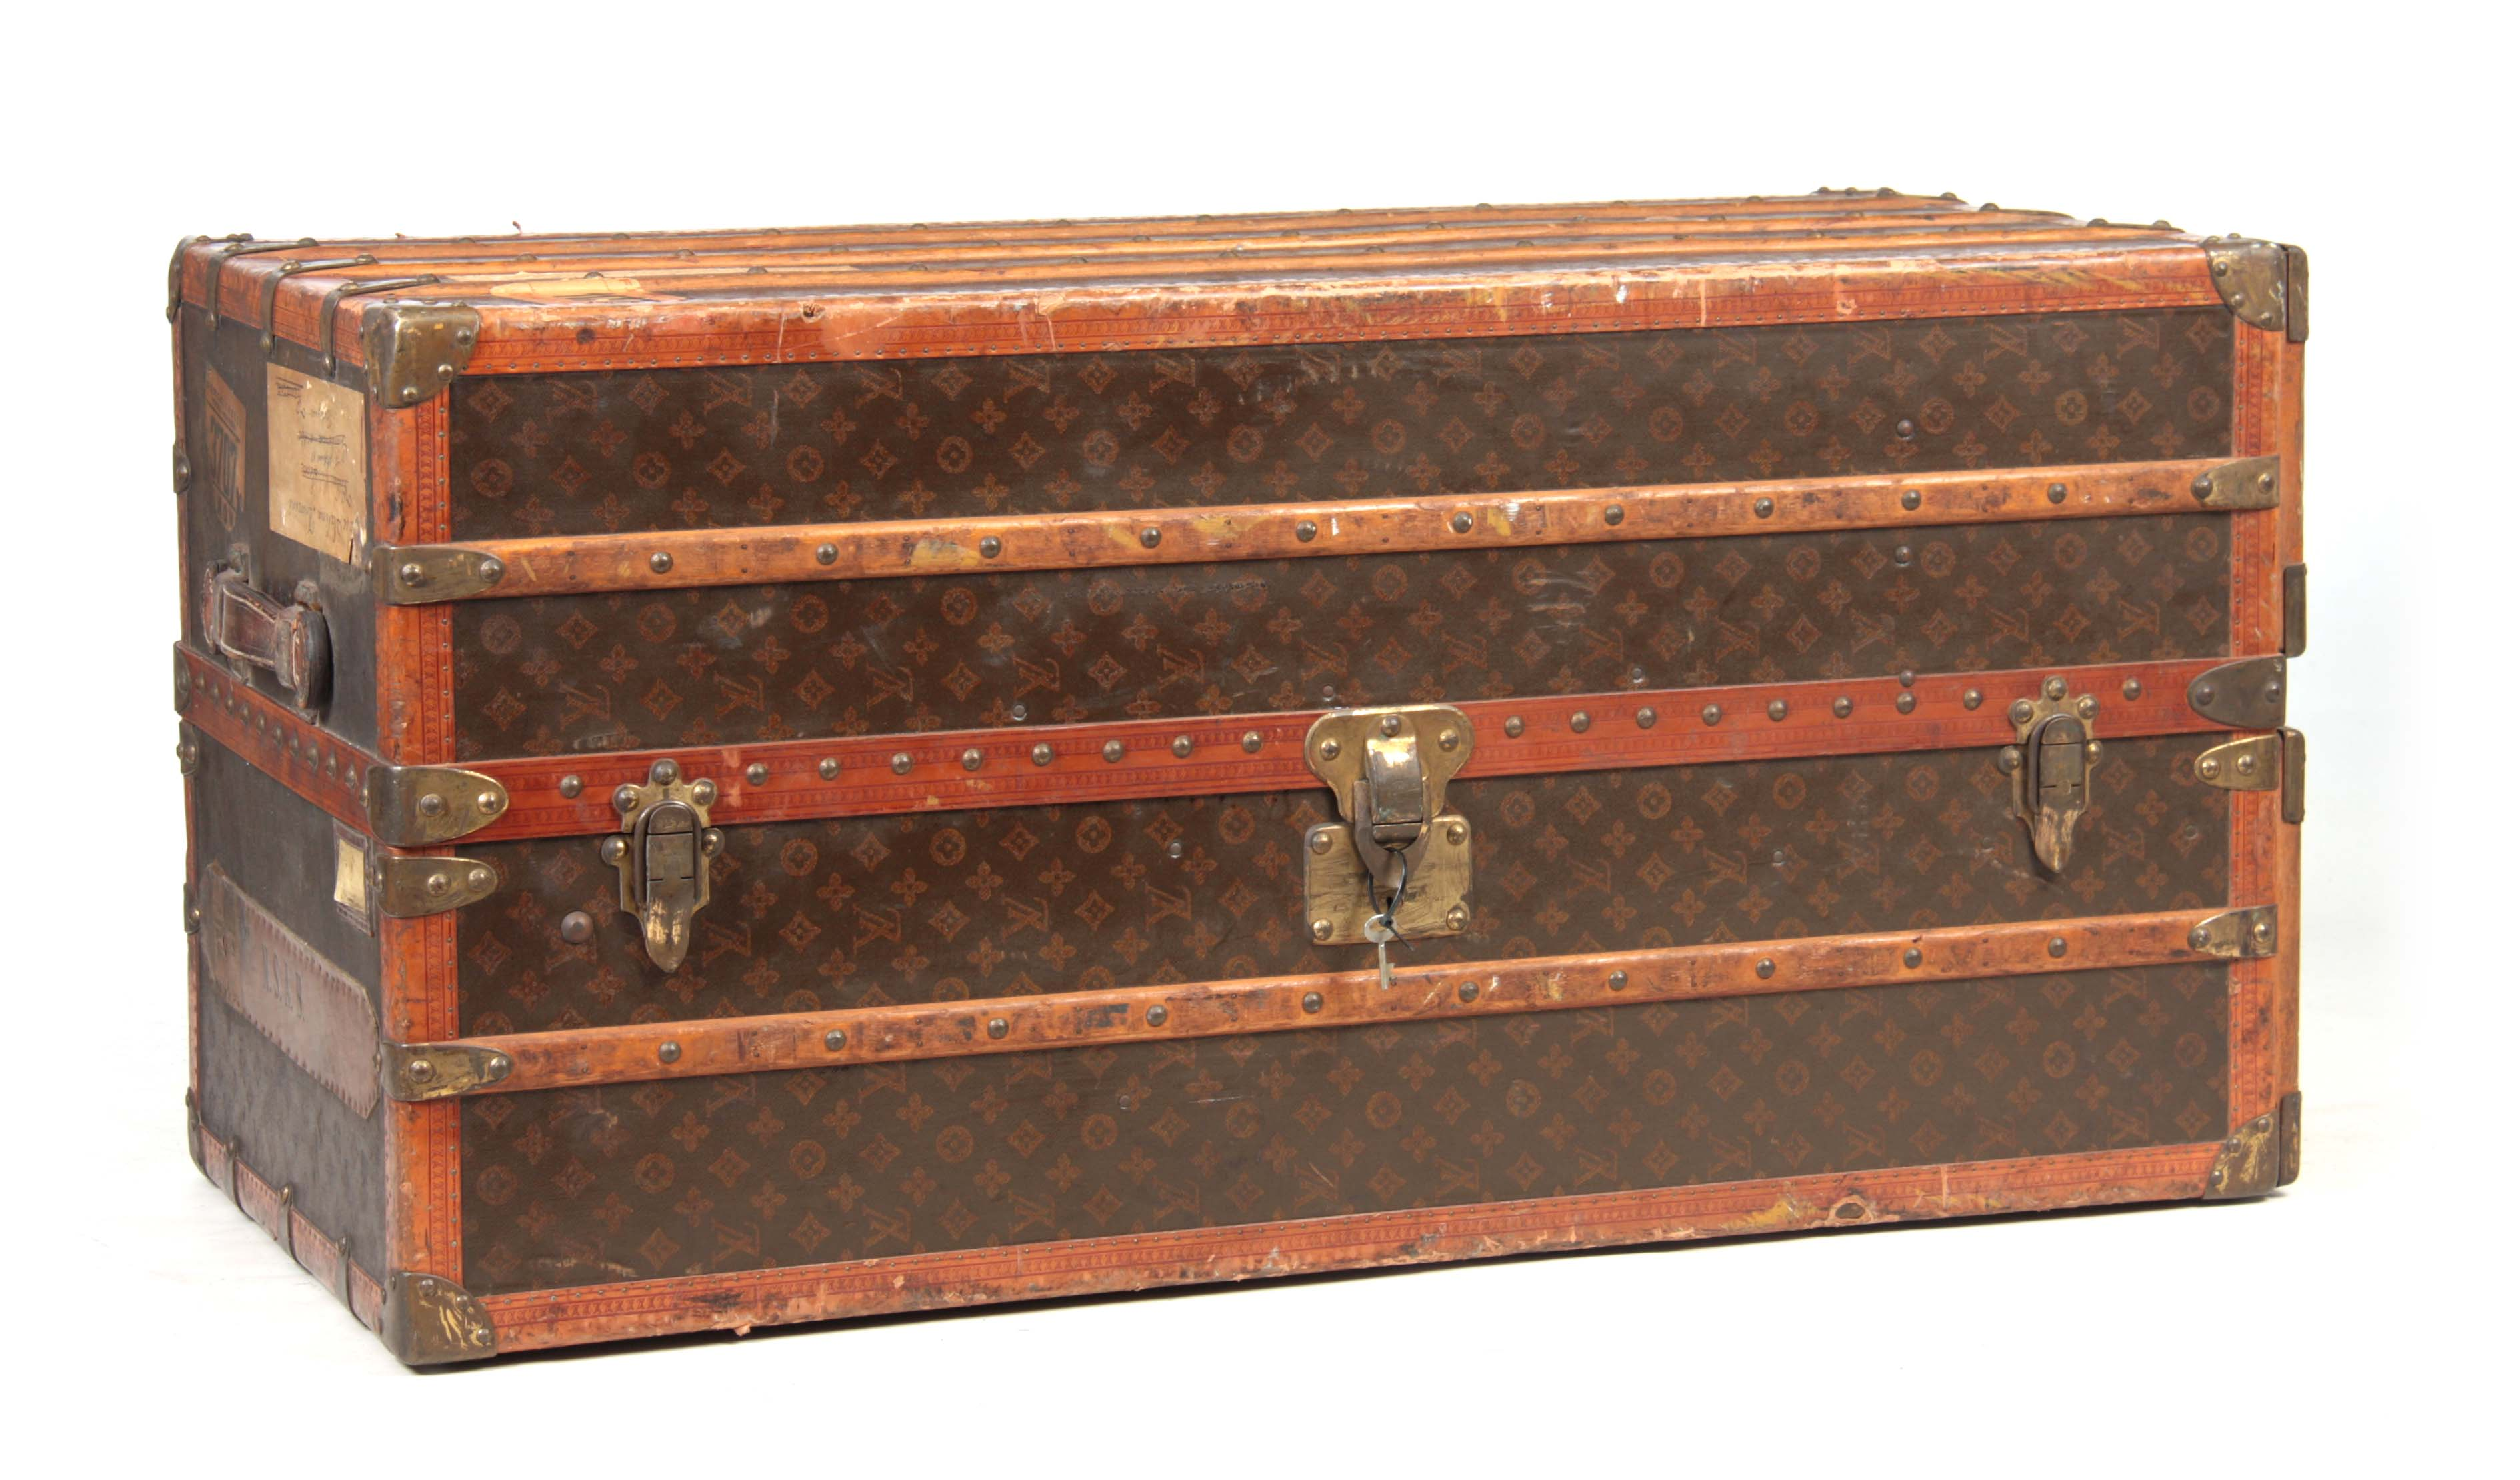 Lot 521 - A 1920'S LOUIS VUITTON MONOGRAMMED BROWN LEATHER WARDROBE TRUNK with studded slatted bindings, brass